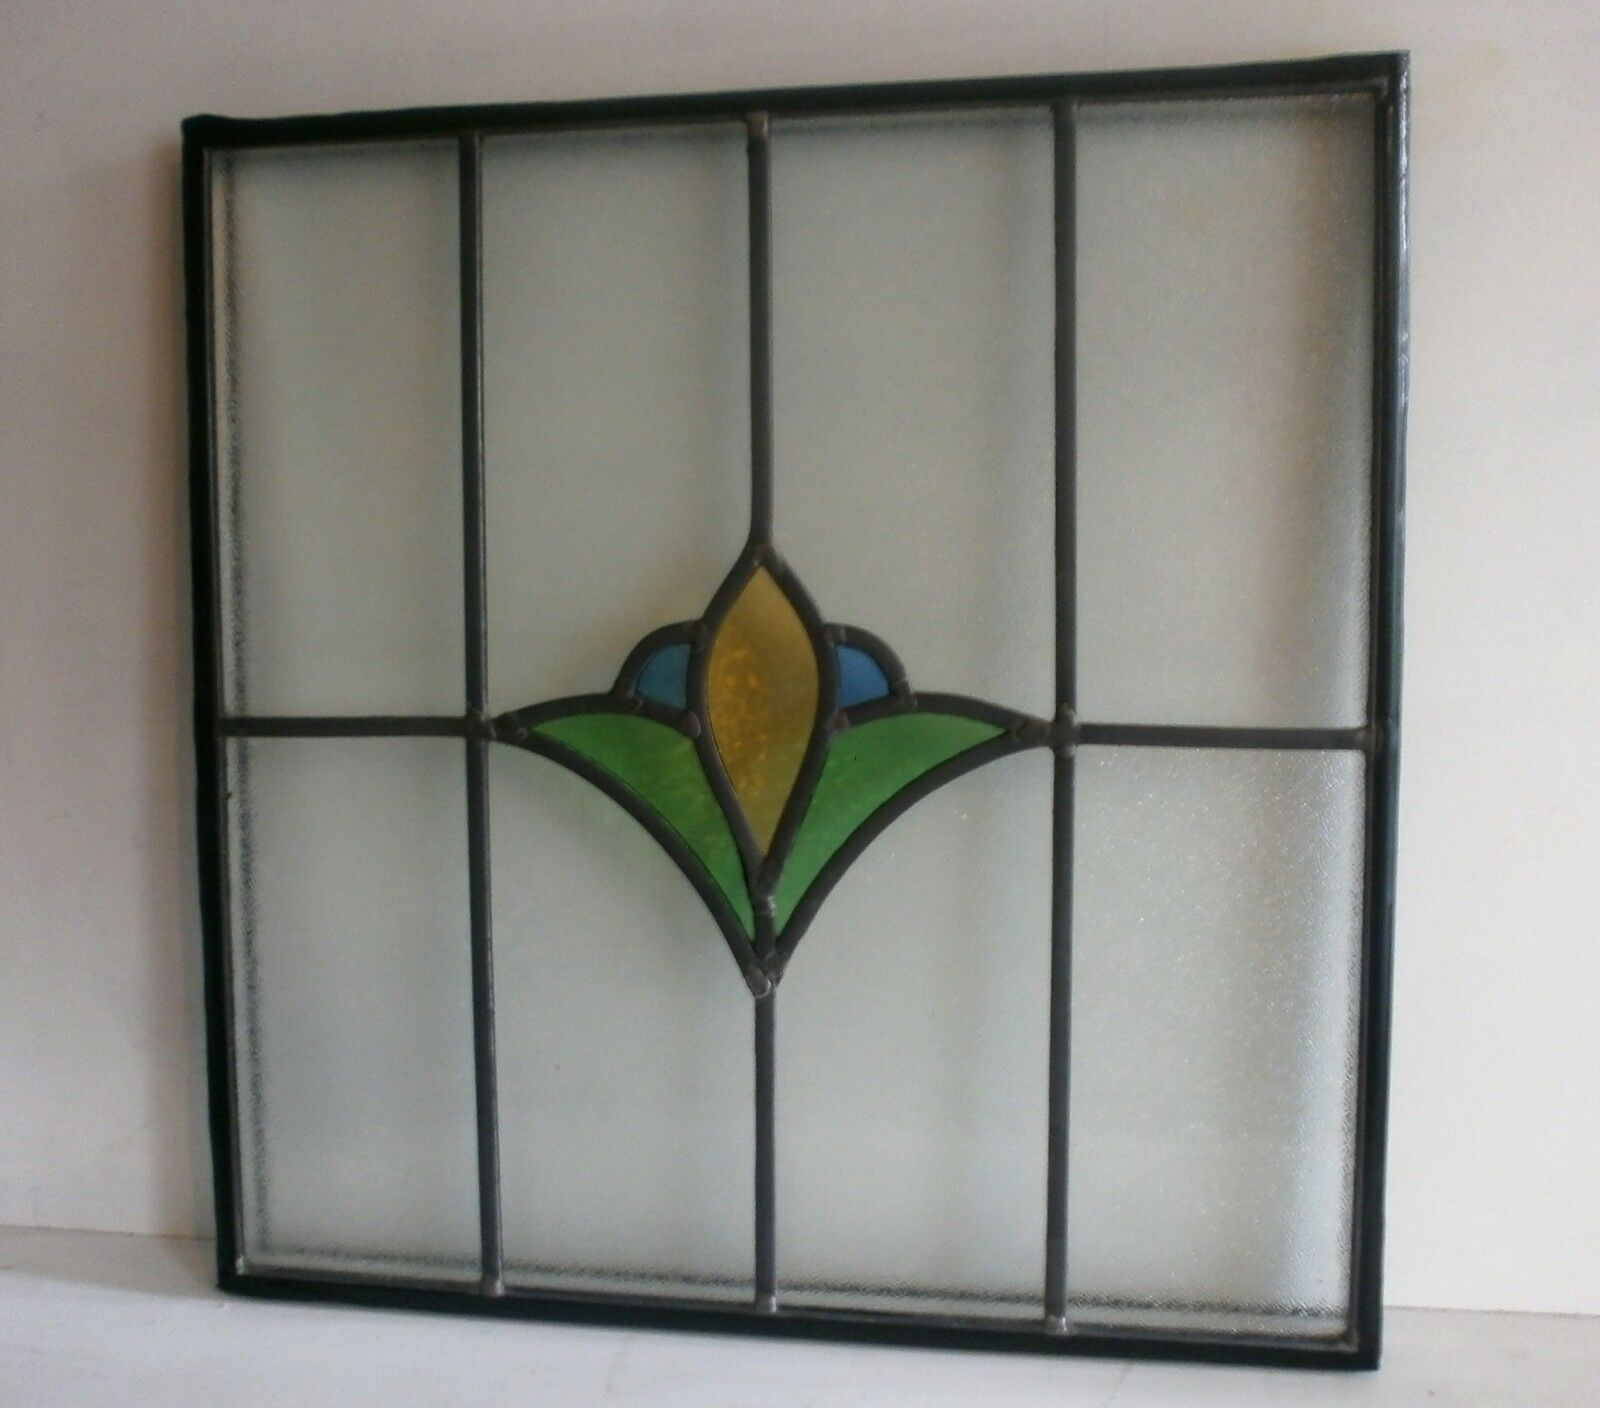 Double glazed leaded stained glass